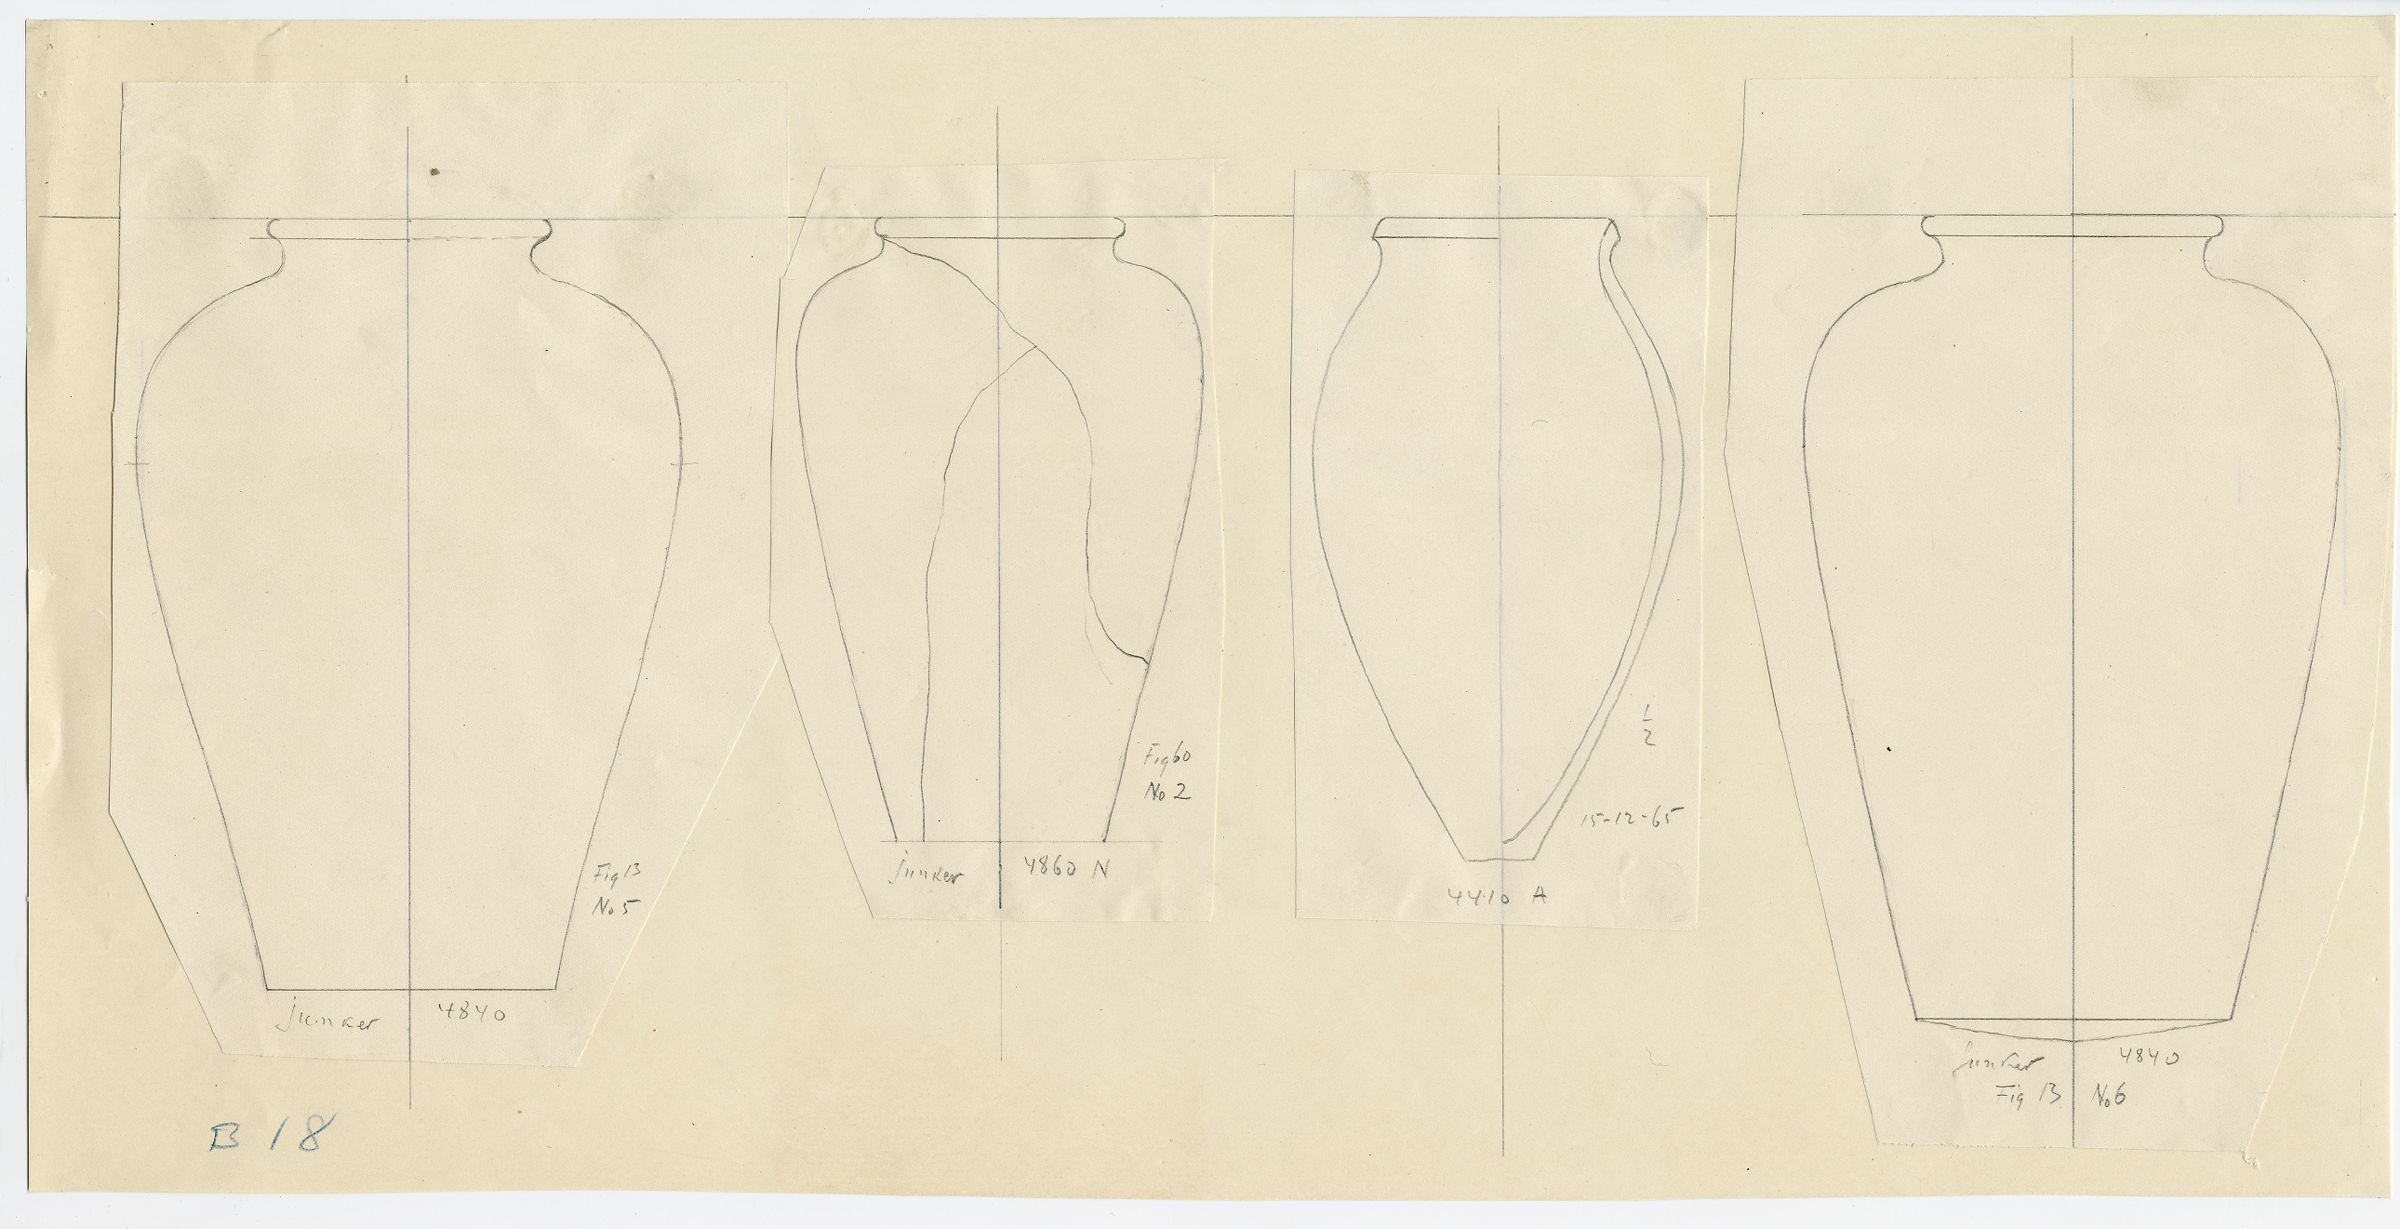 Drawings: Pottery jars from G 4410, G 4840, G 4860